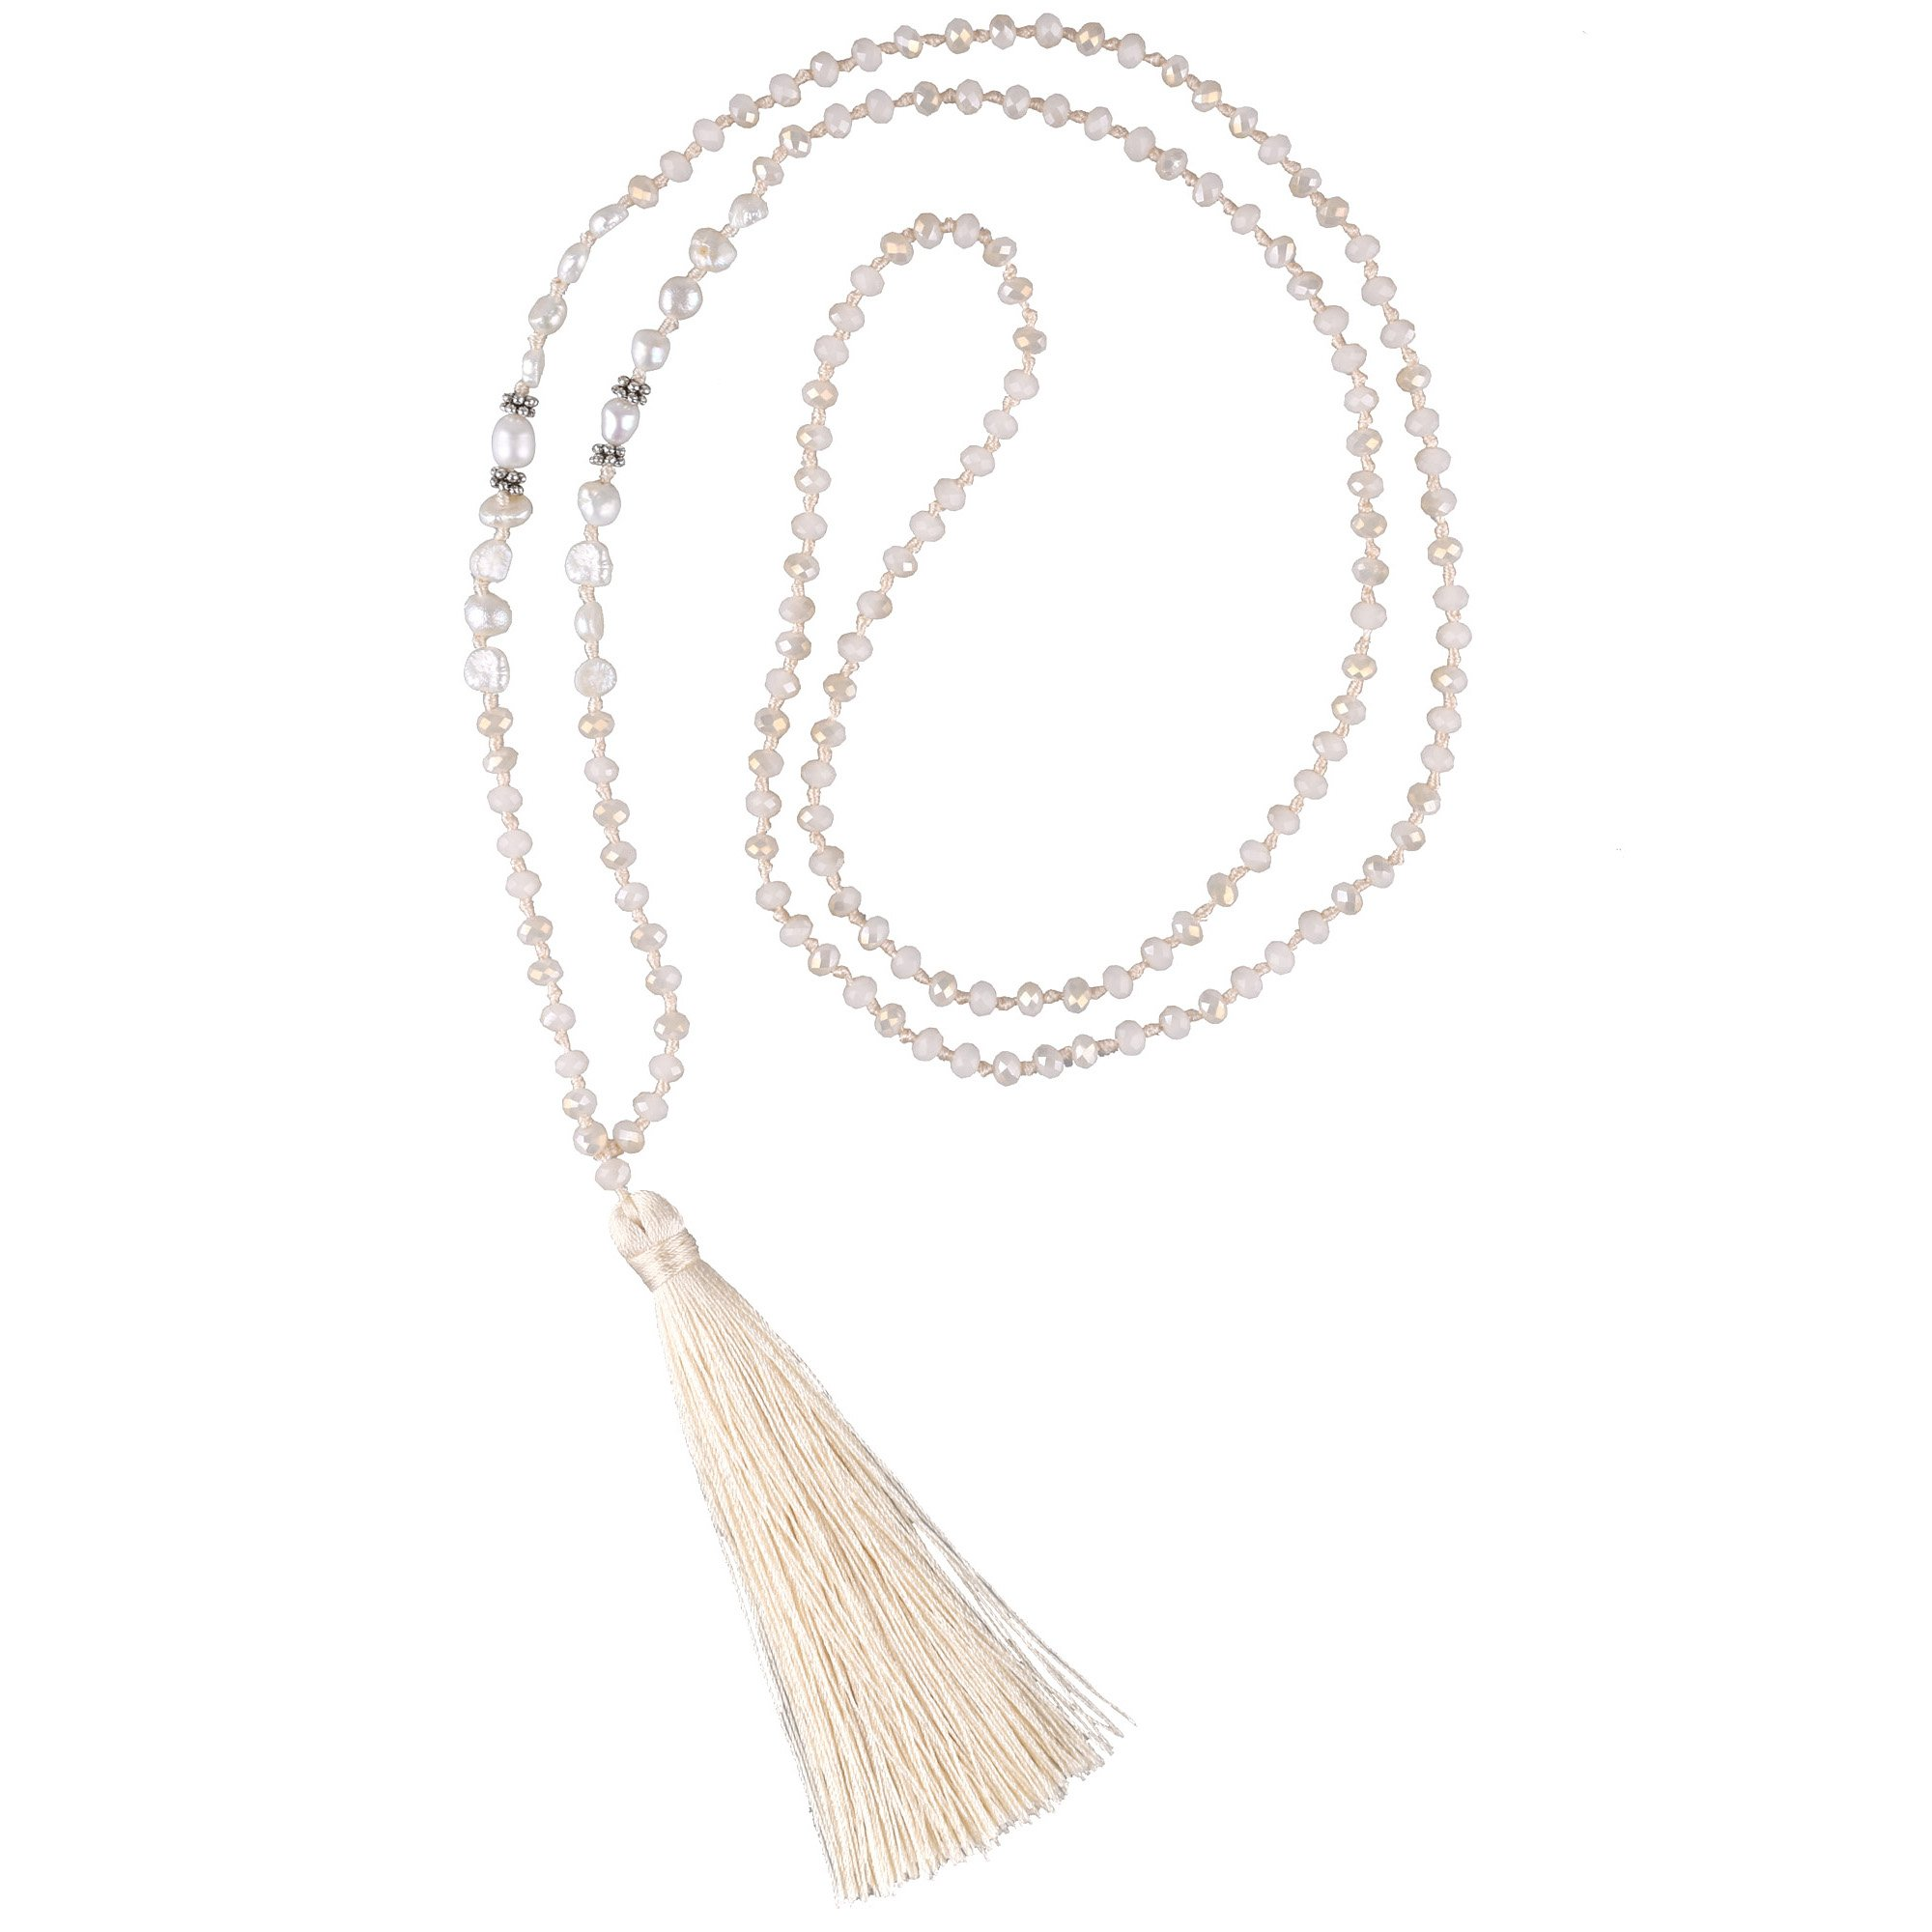 C·QUAN CHI Long Chain Pearl Tassel Necklace Handmade Crystal Beaded Pendant Bohemian Women Statement Jewelry for Women Gifts for Girls by C·QUAN CHI